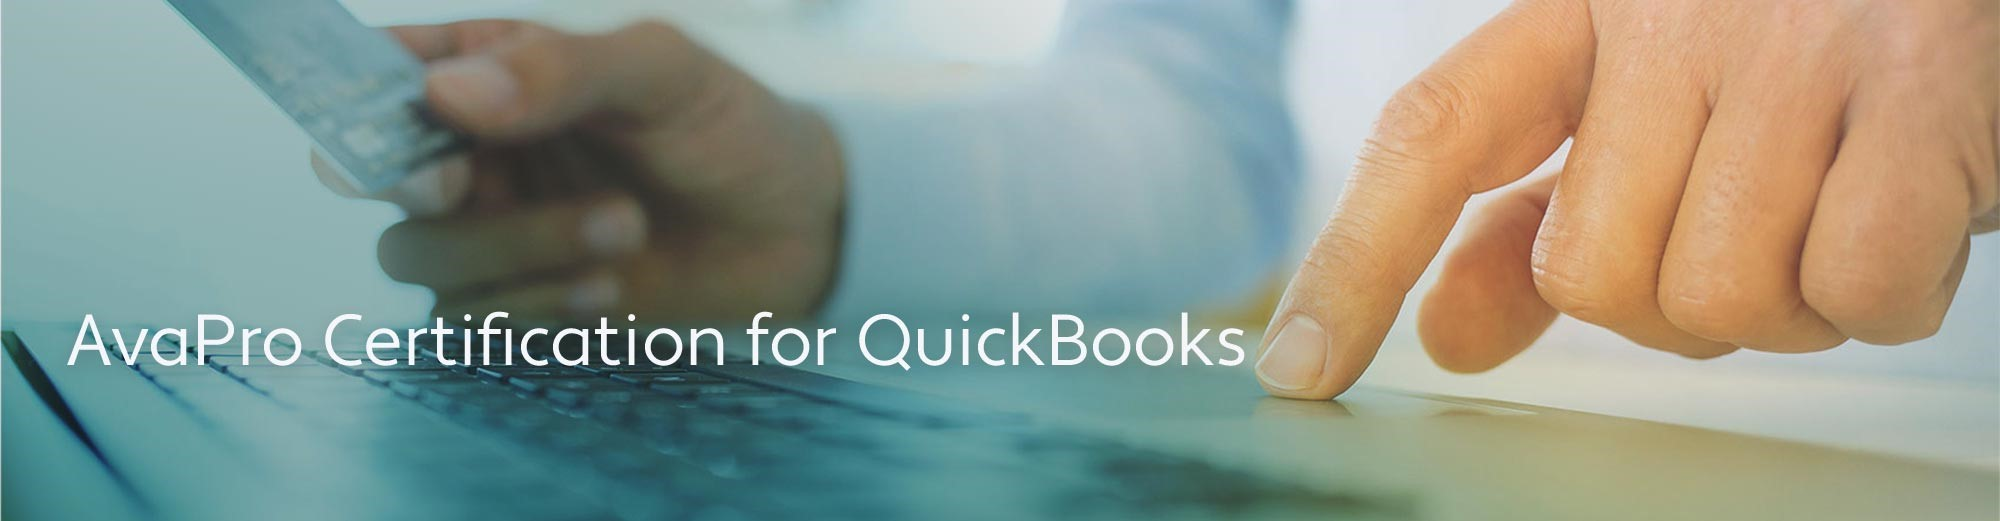 AvaPro Certification for Quickbooks